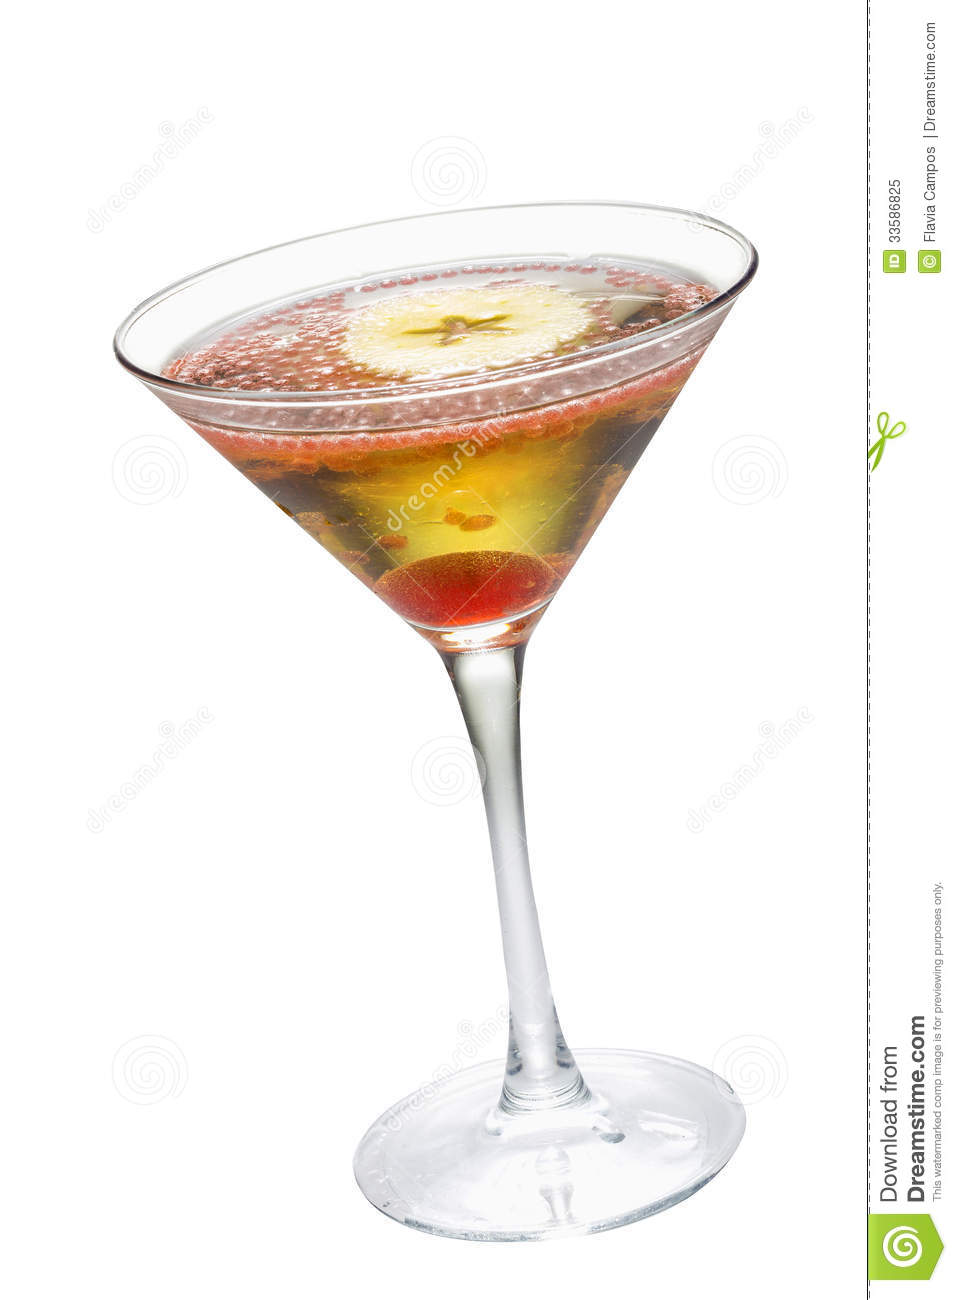 Apple Martini Royalty Free Stock Photo   Image  33586825